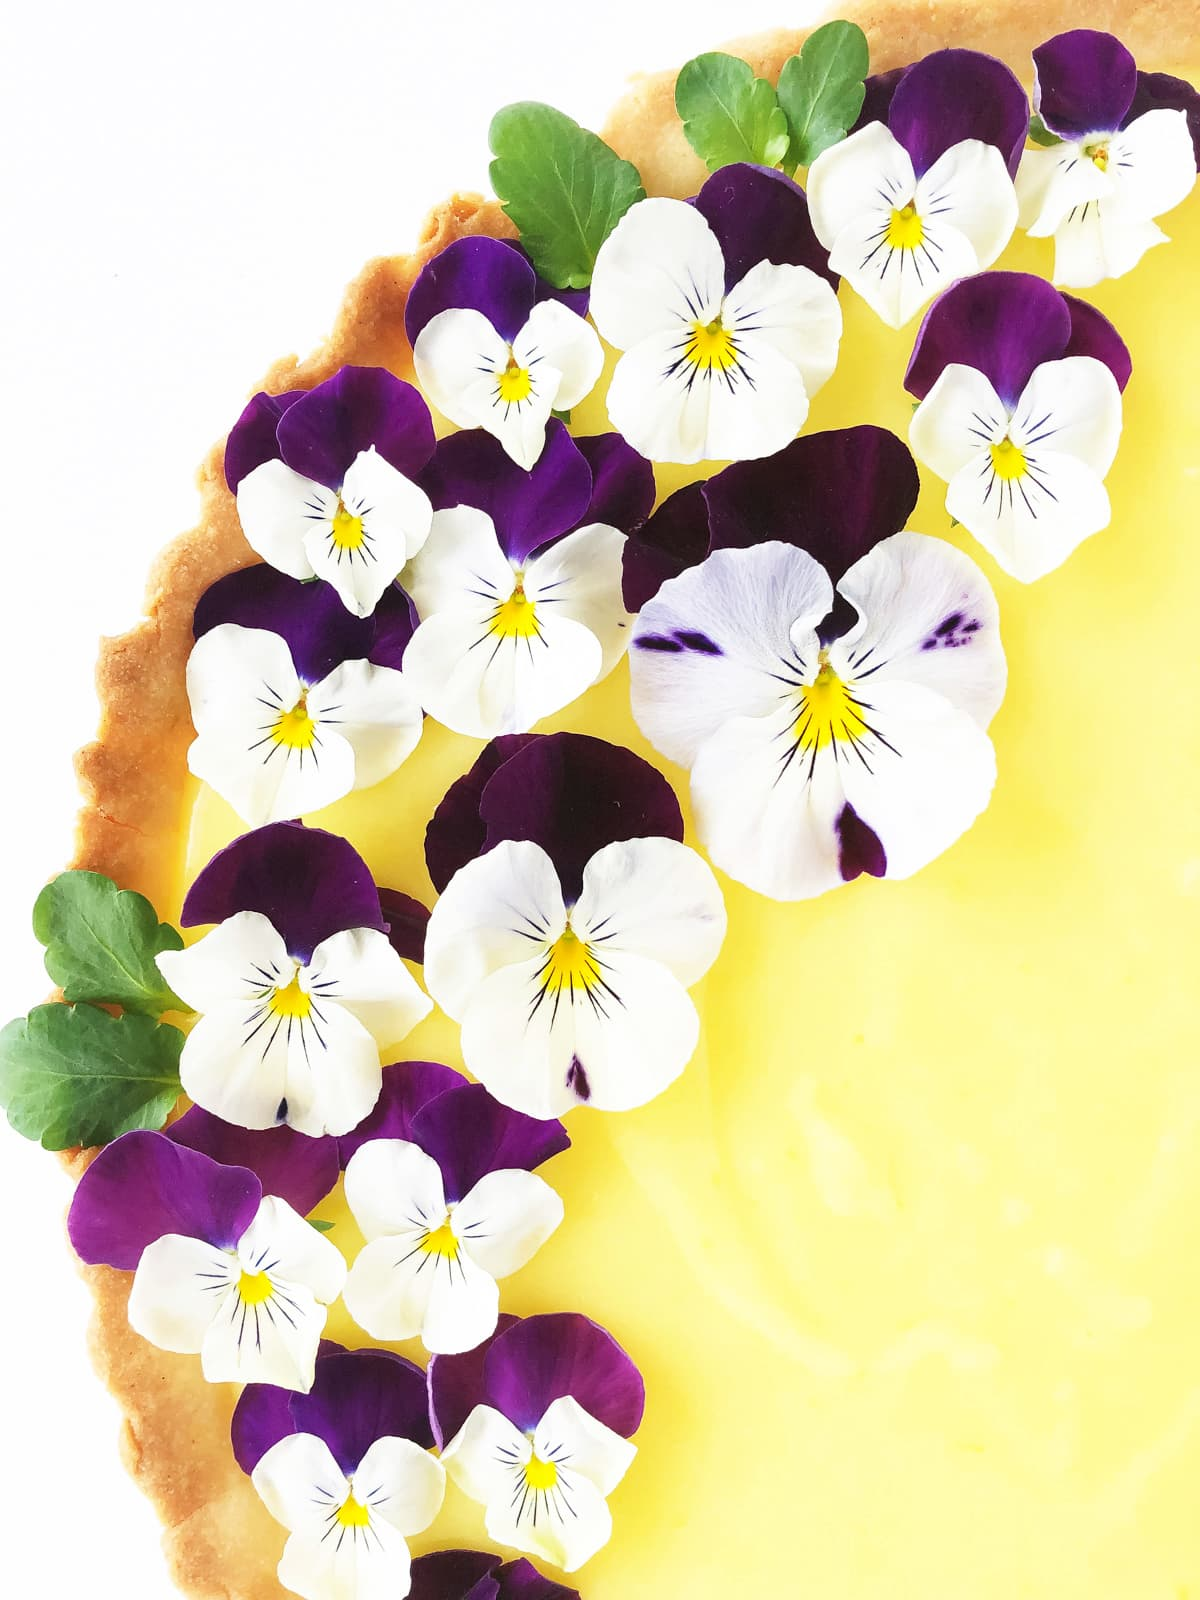 a Lemon Tart with a Shortbread Cookie Crust, garnished with Pansies